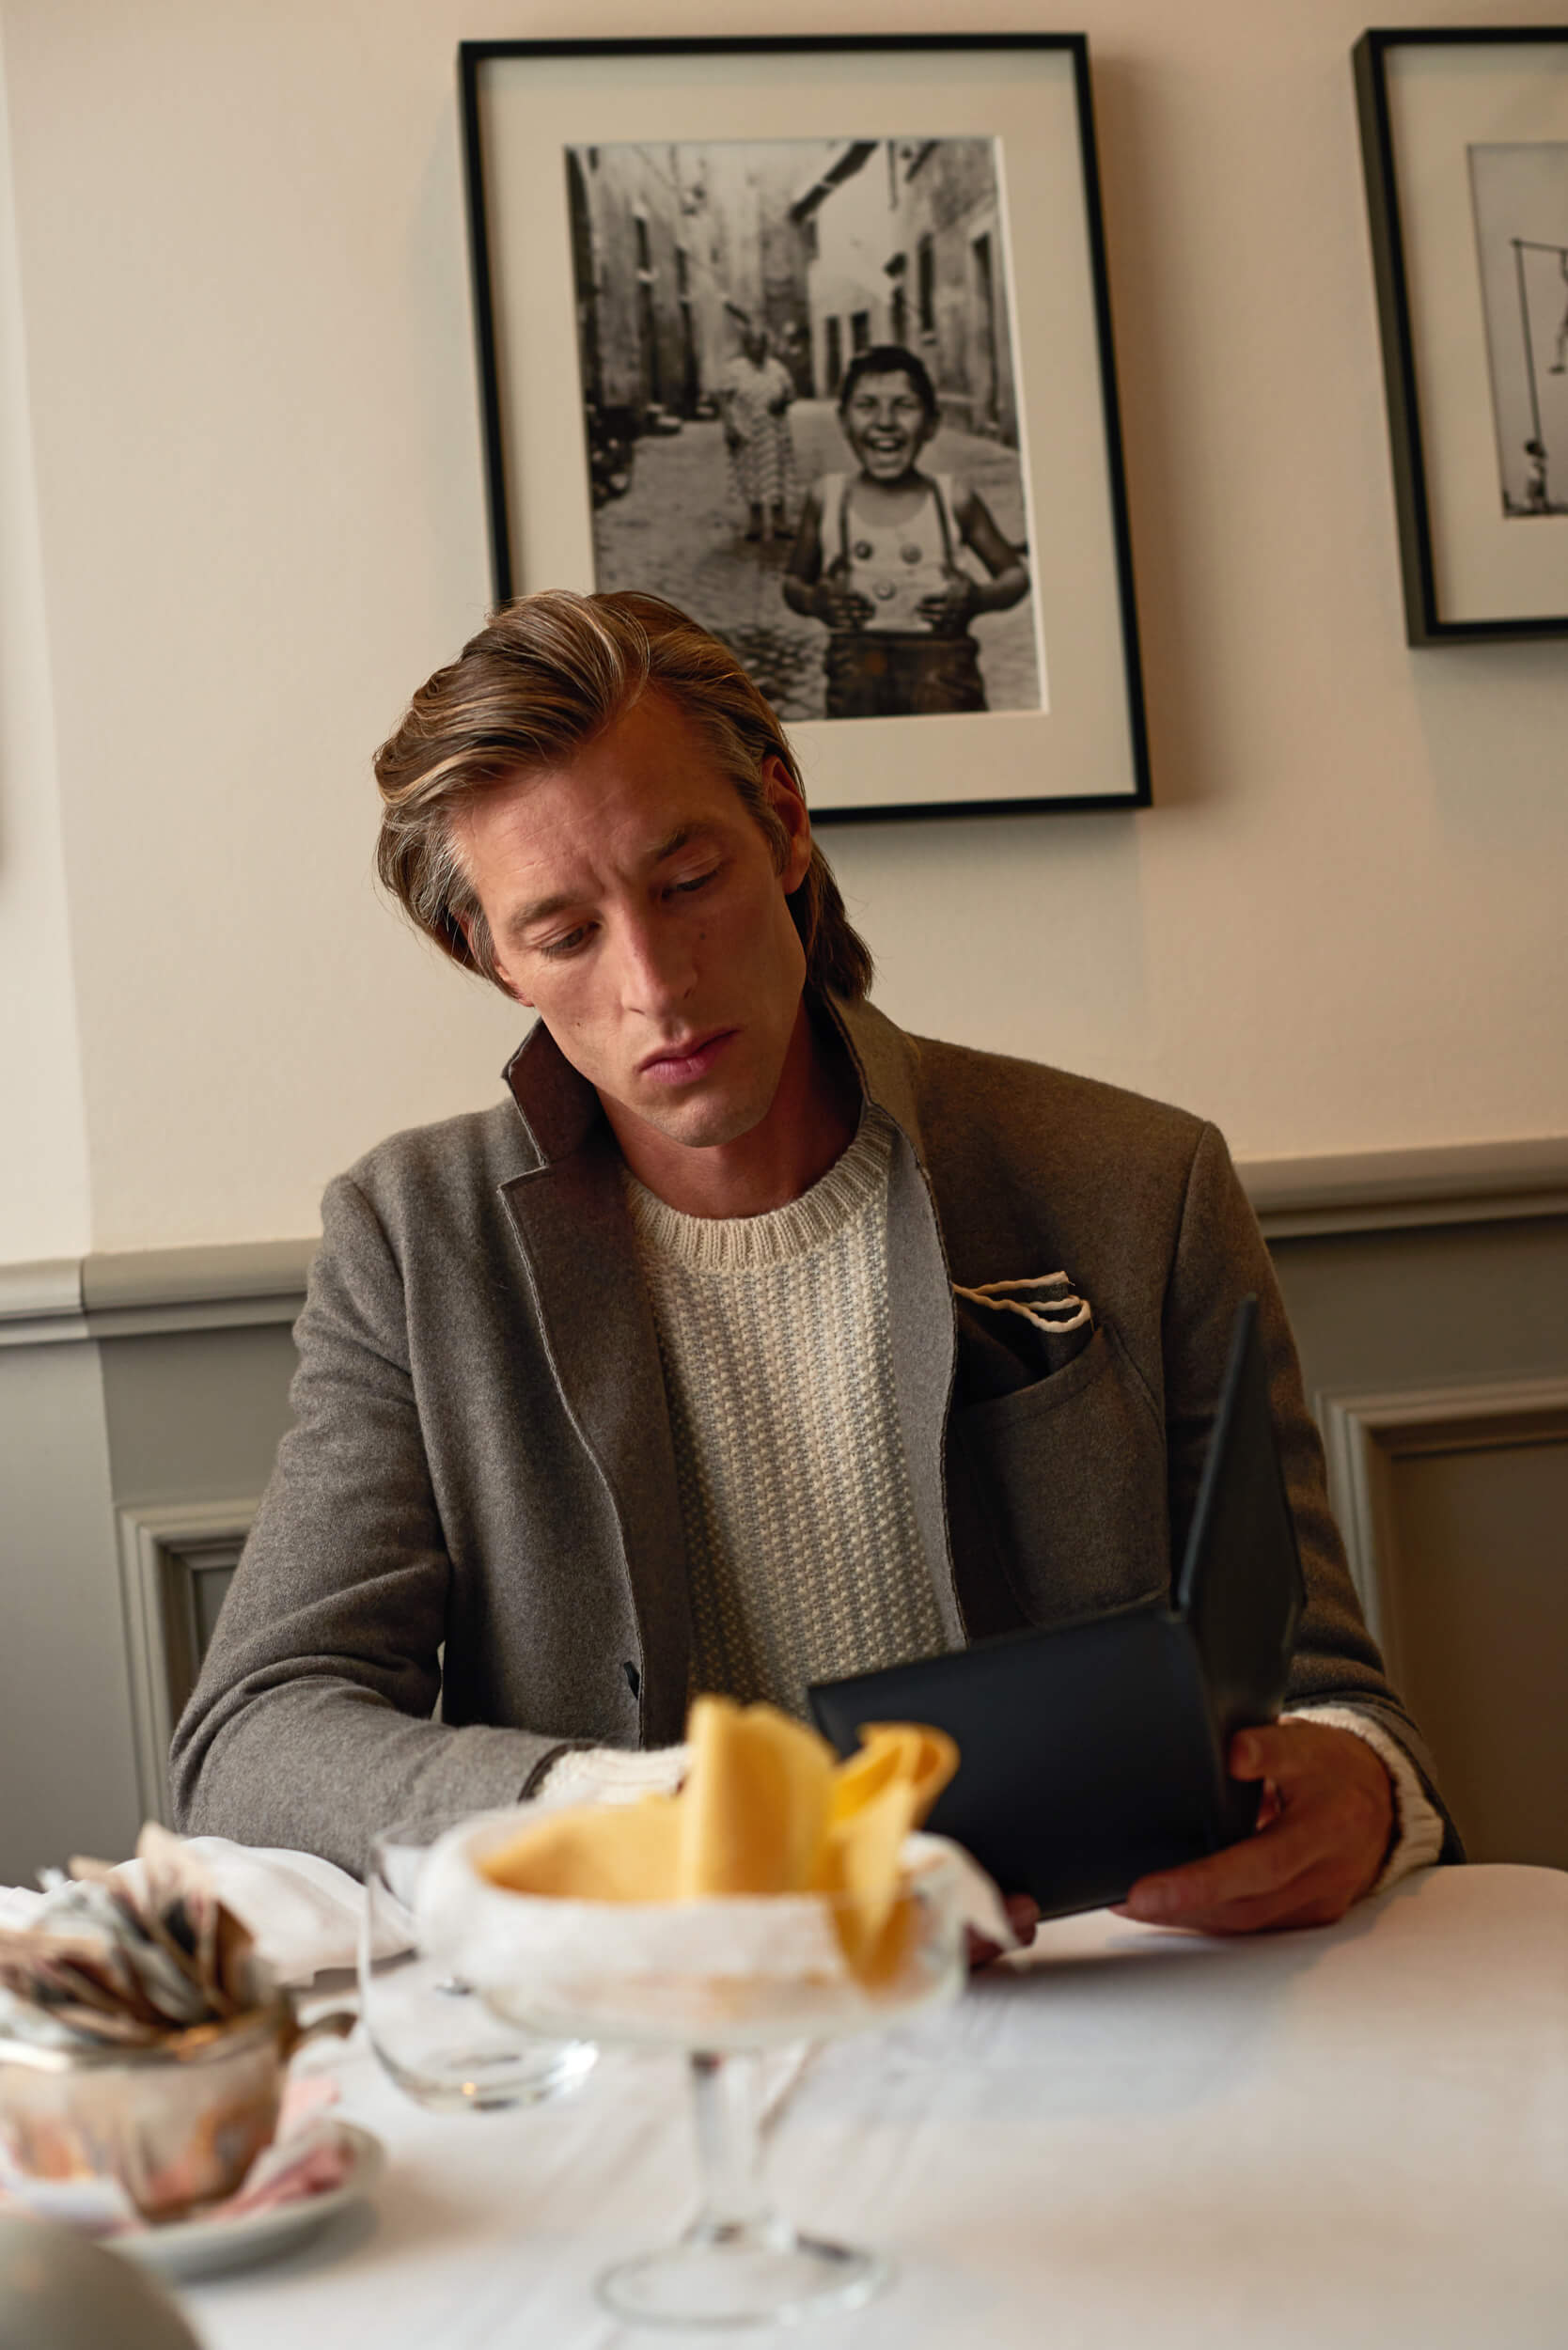 Elengant man sitting at a cafe table with cashmere blazer